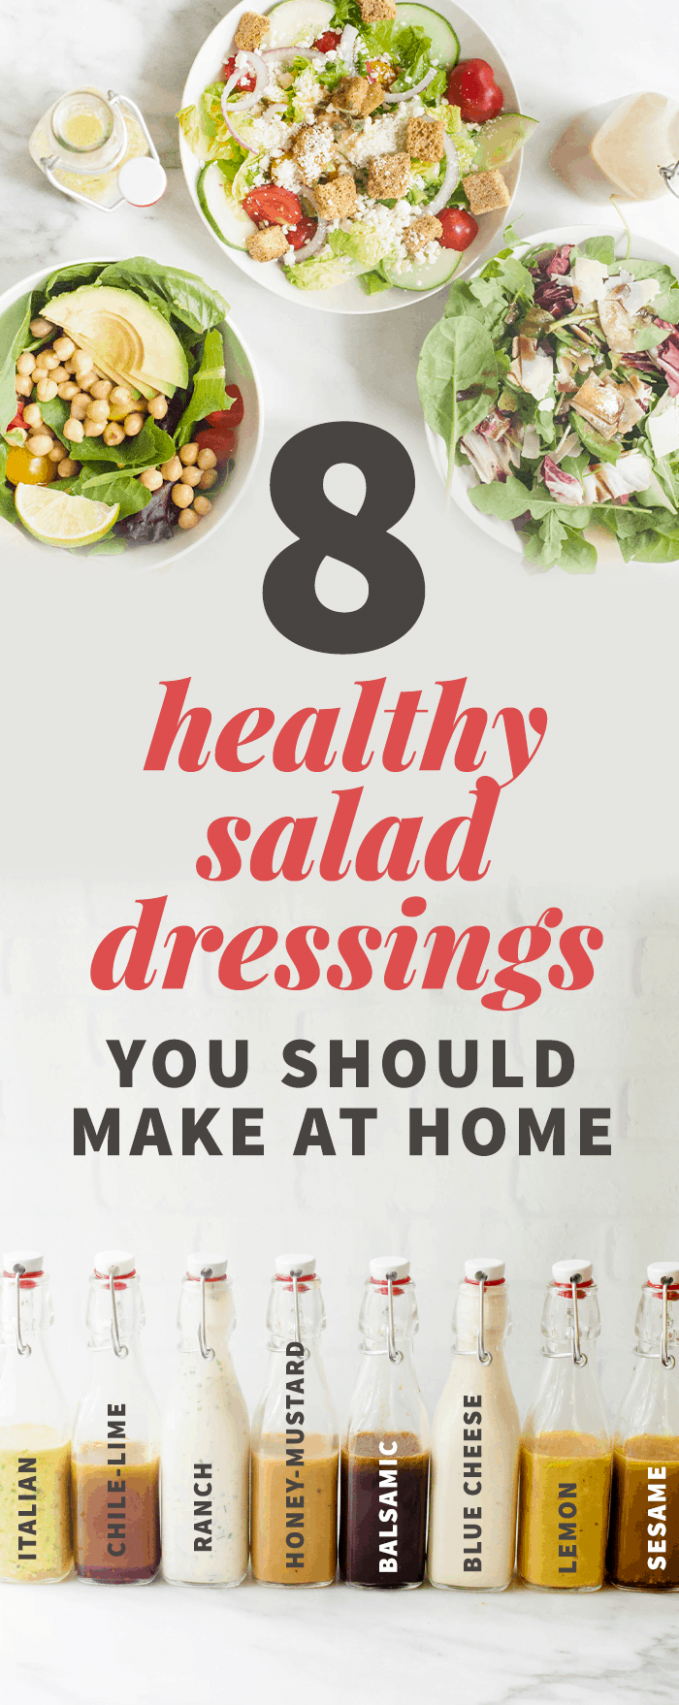 12 Healthy Salad Dressing Recipes You Should Make at Home | Wholefully - Salad Recipes And Dressings